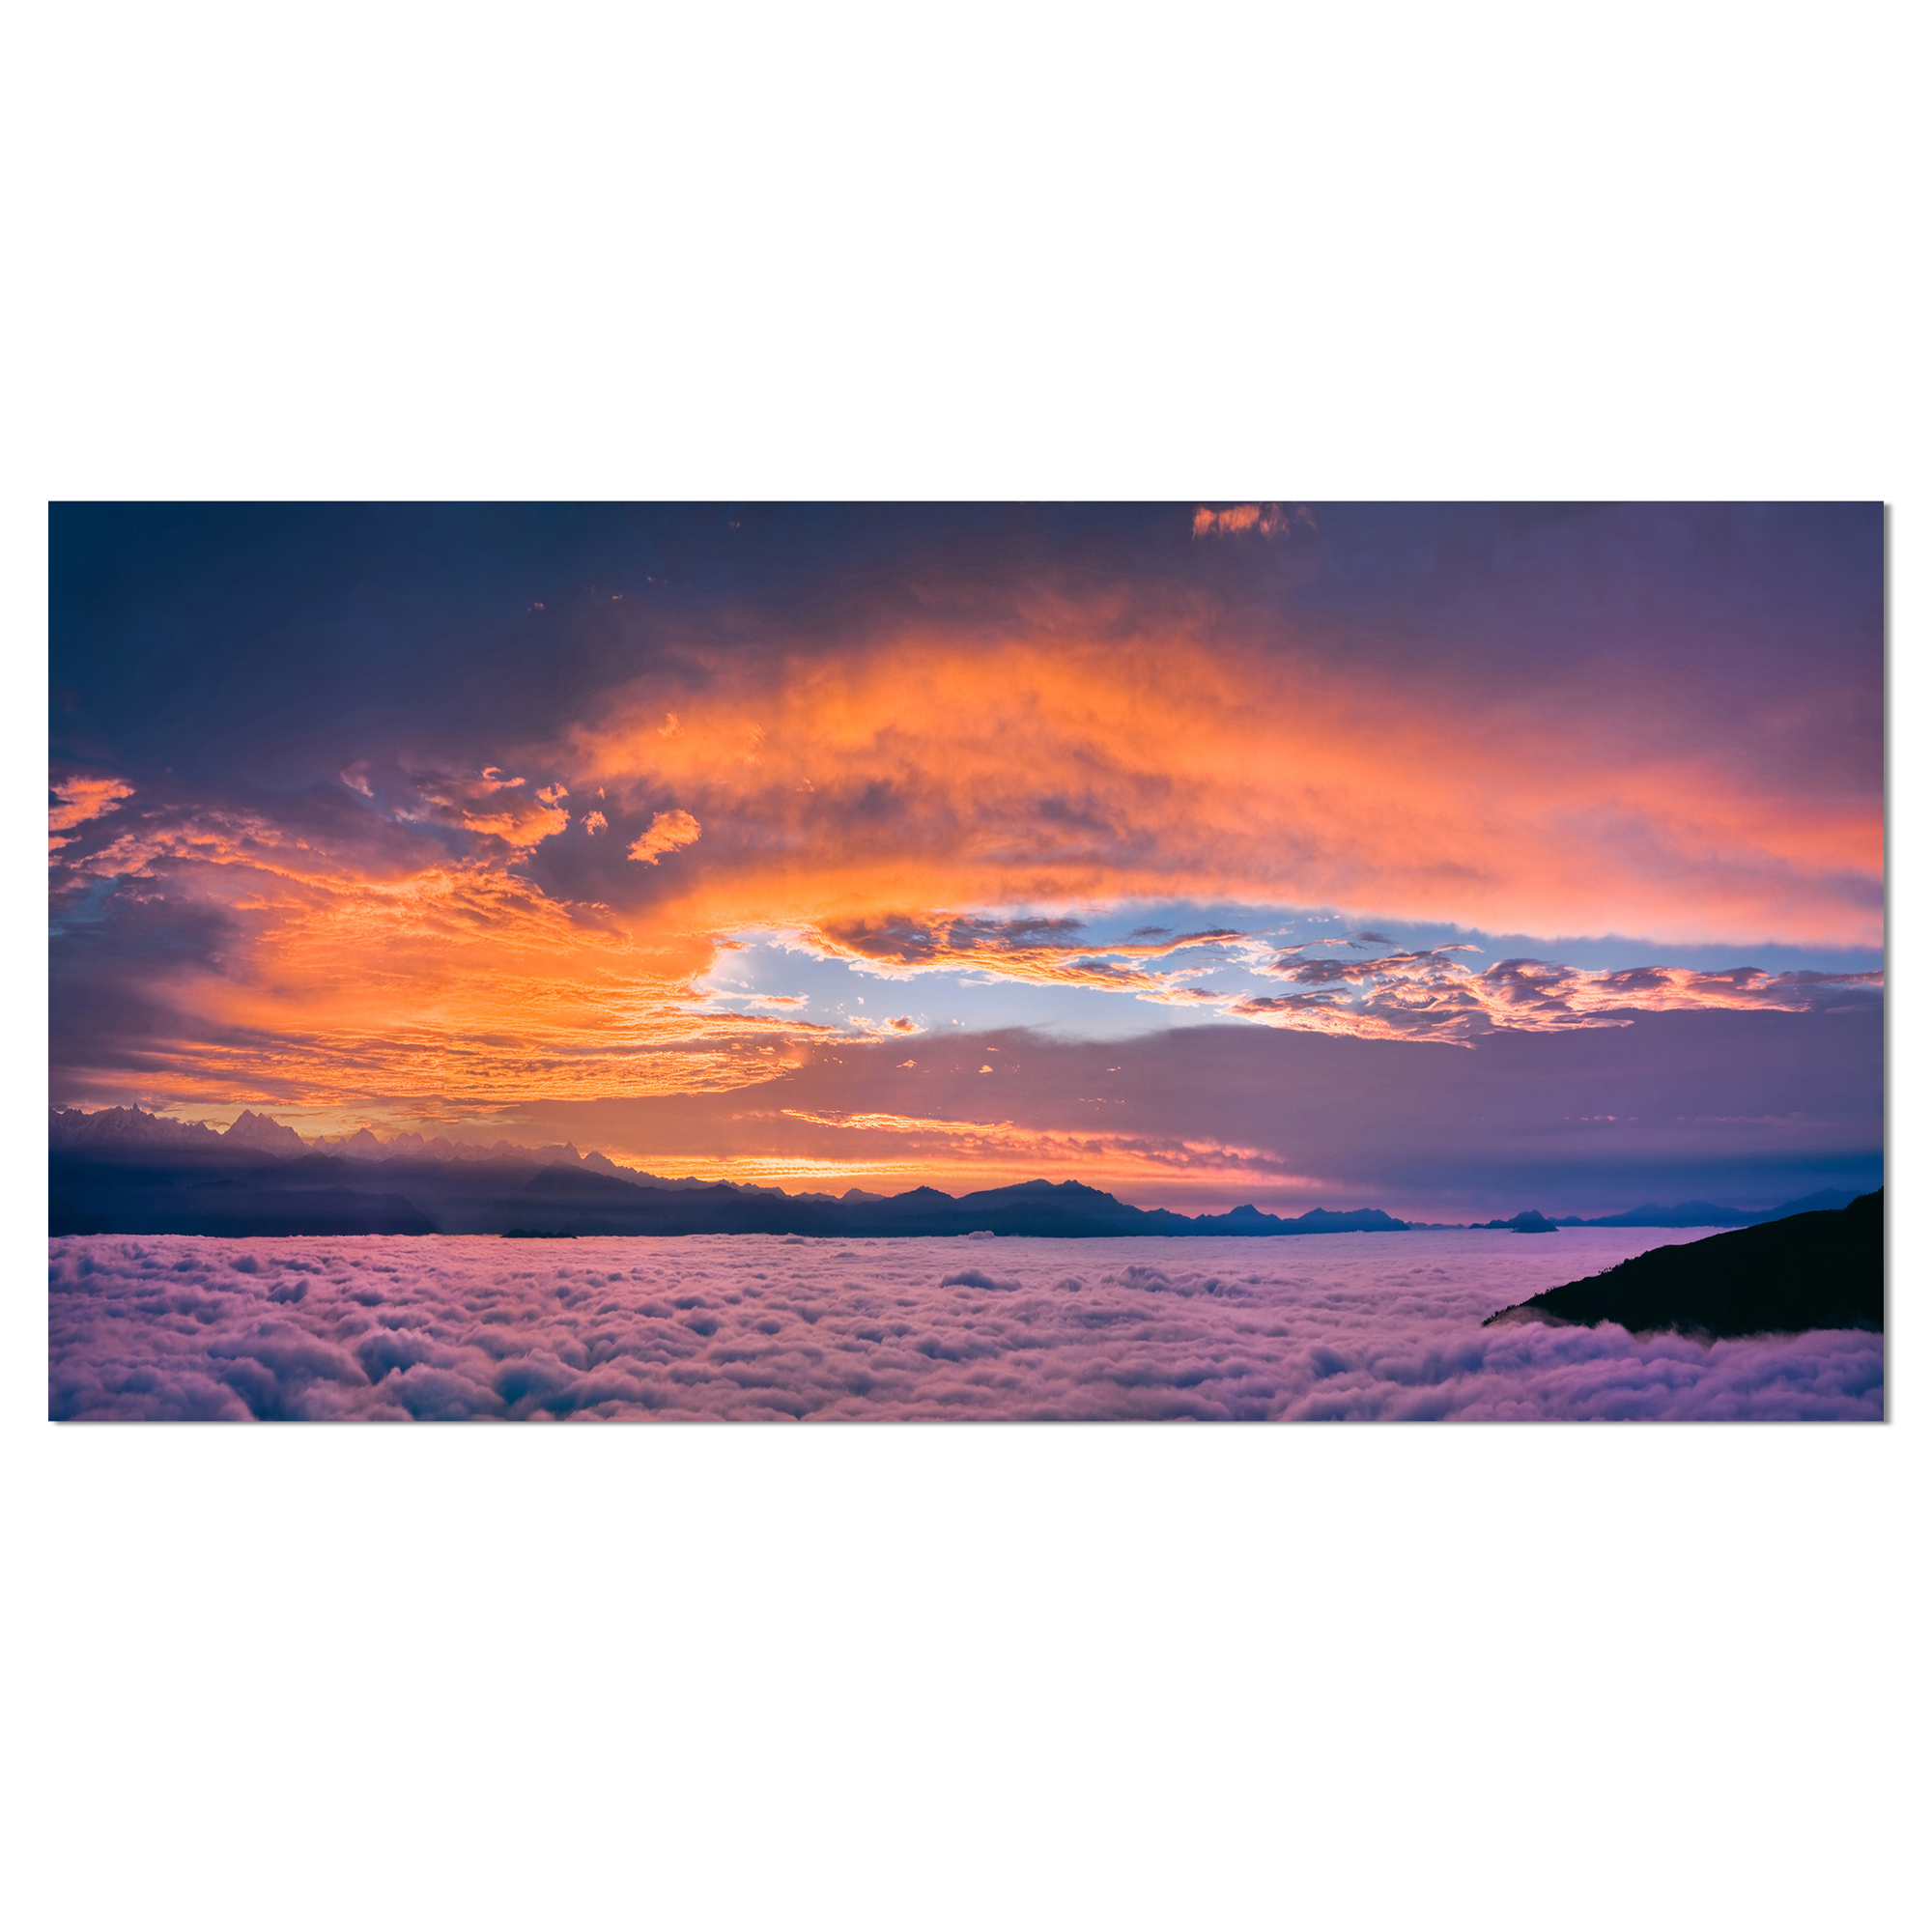 Night Sky Beautiful Landscape Large Wall Art Poster Print